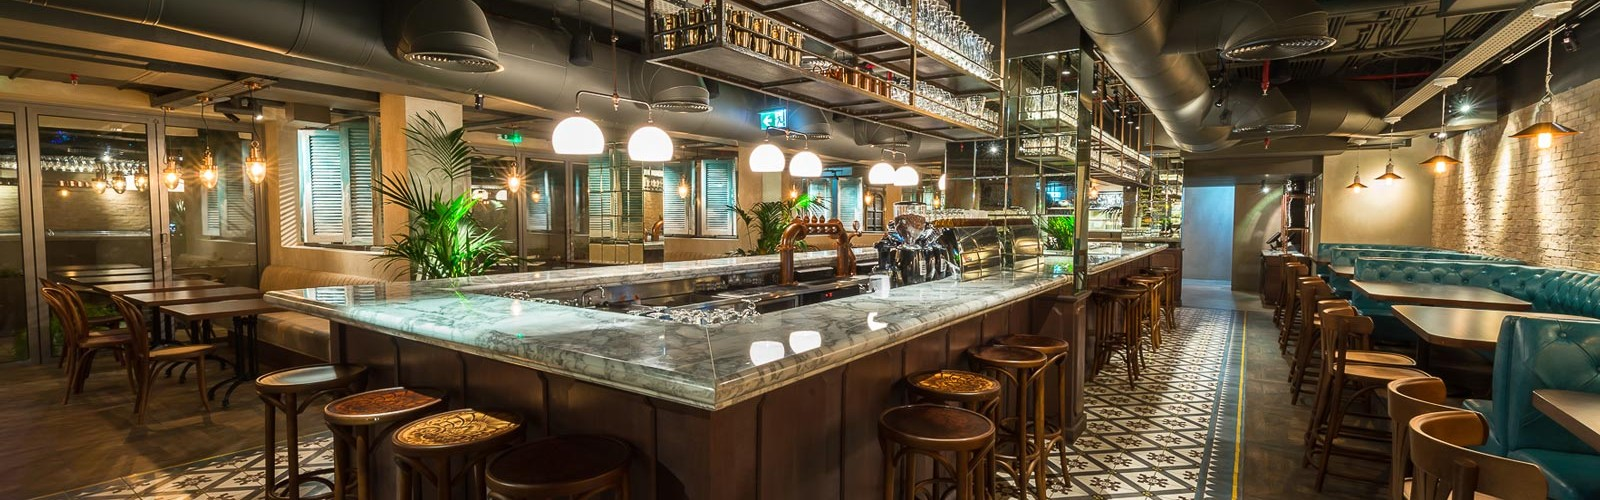 Nola Eatery Social House by Stones and Walls The Greek Foundation